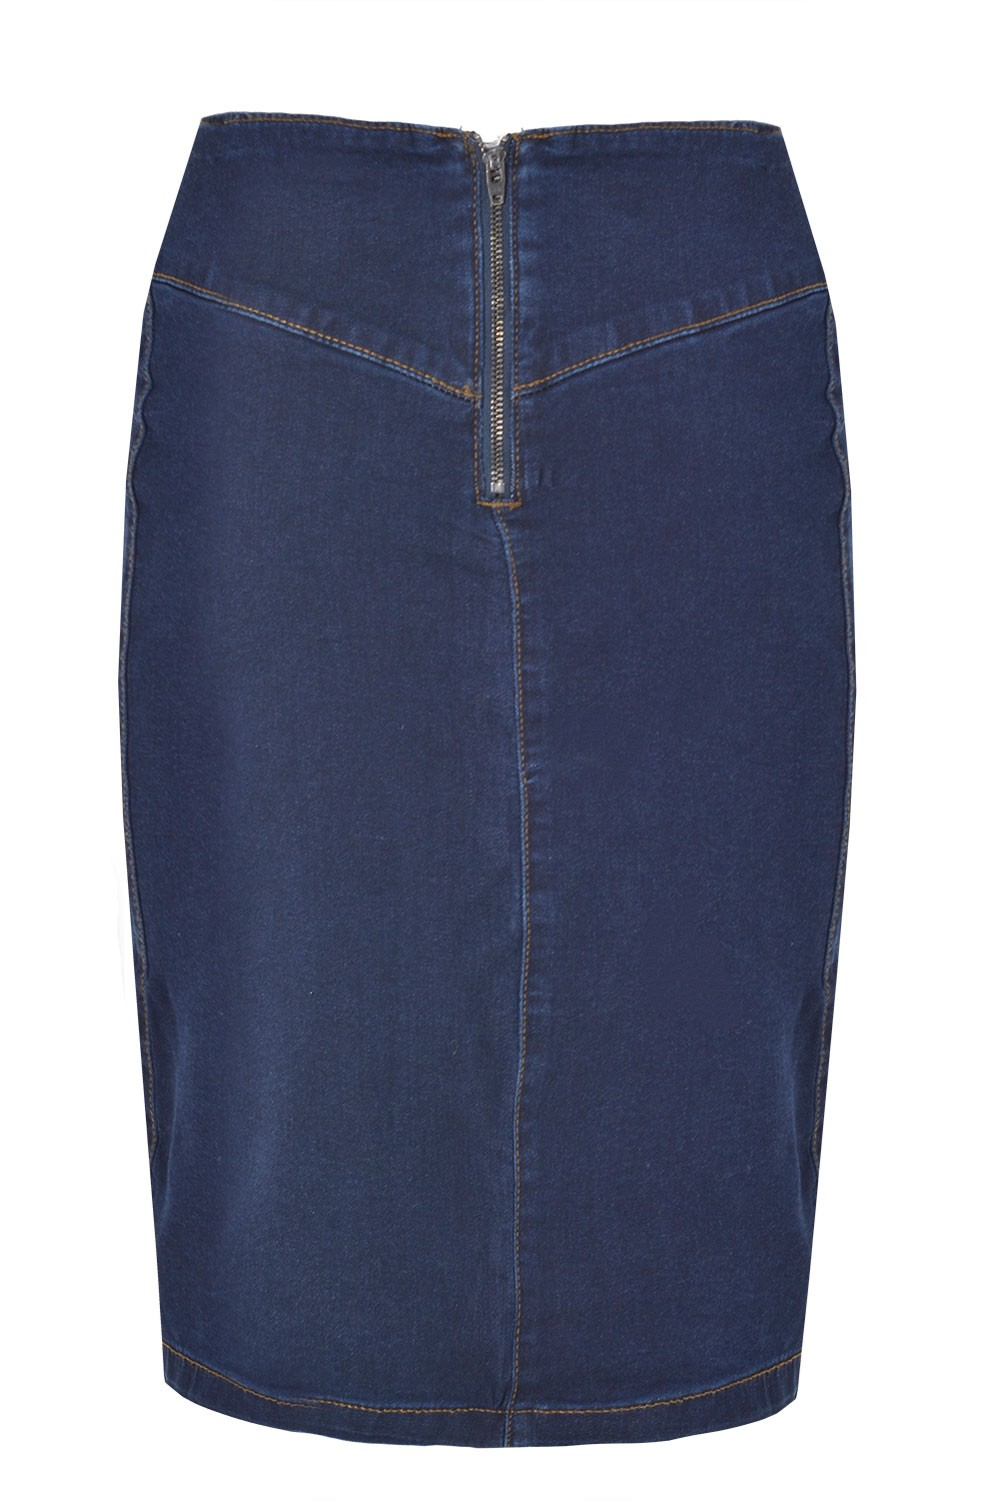 TheMogan Women's Vintage Washed Blue Jean Pencil Midi Soft Denim Skirt. Sold by TheMogan. $ fascinatingnewsvv.ml Blue Asymmetric Button Front Slit Pencil Denim Skirt. Sold by 2 Sellers. $ $ Castaluna Womens Denim Pencil Skirt. Sold by La Redoute. $ $